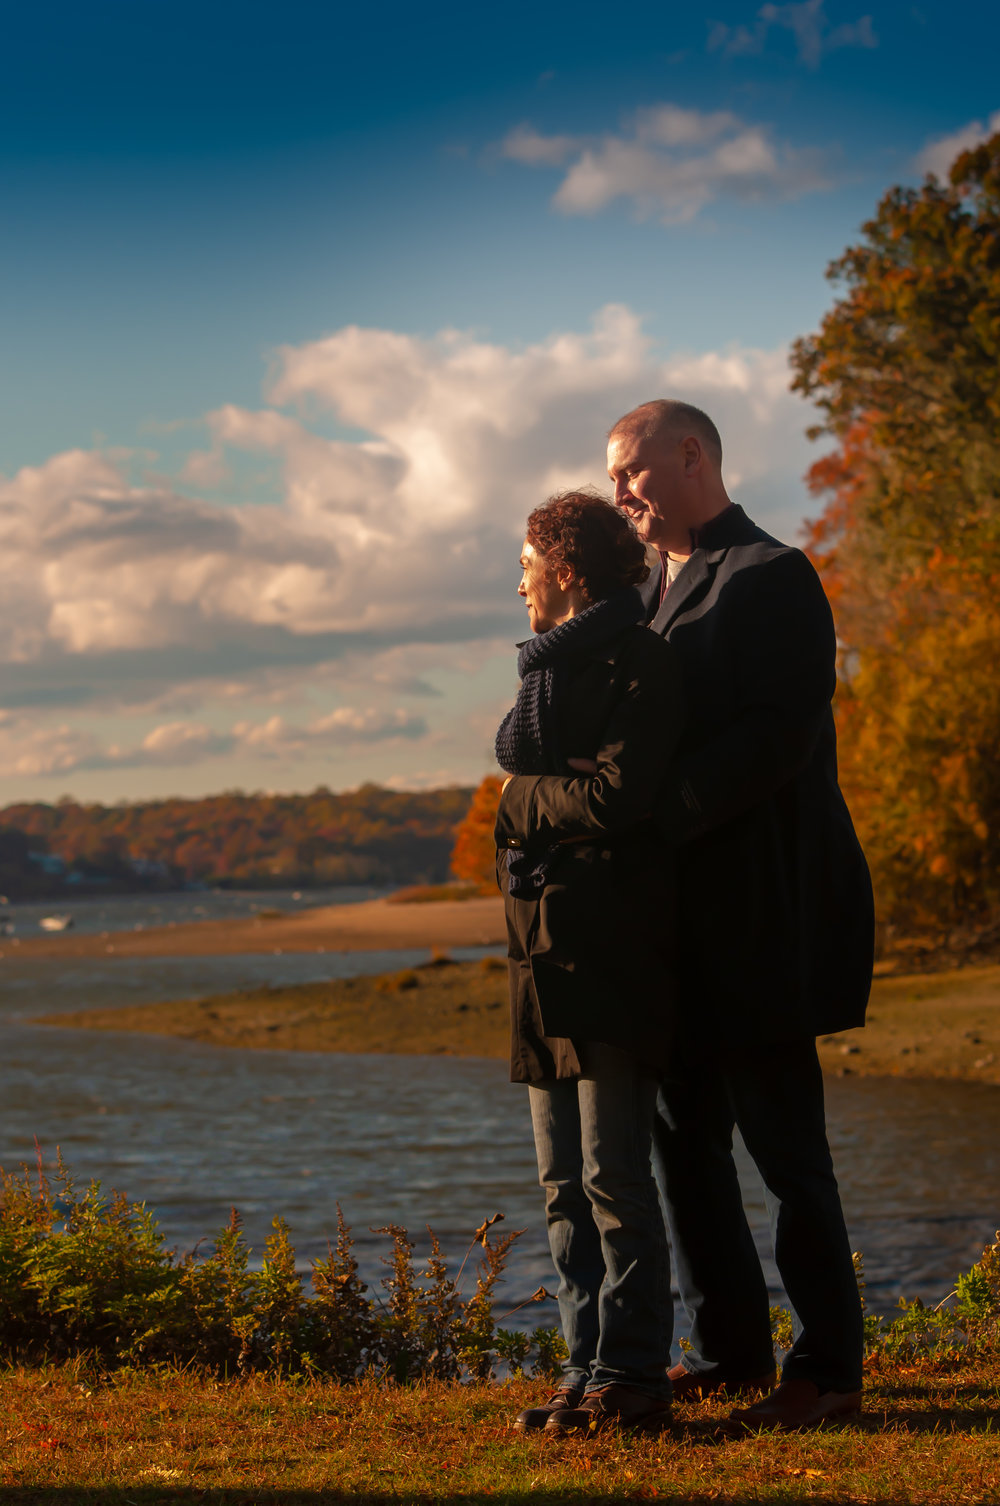 FIneArt_CarrieAnneGonzalez_NYPhotography_CarrieWestonStudios_Portrait_Engagement-5156.jpg